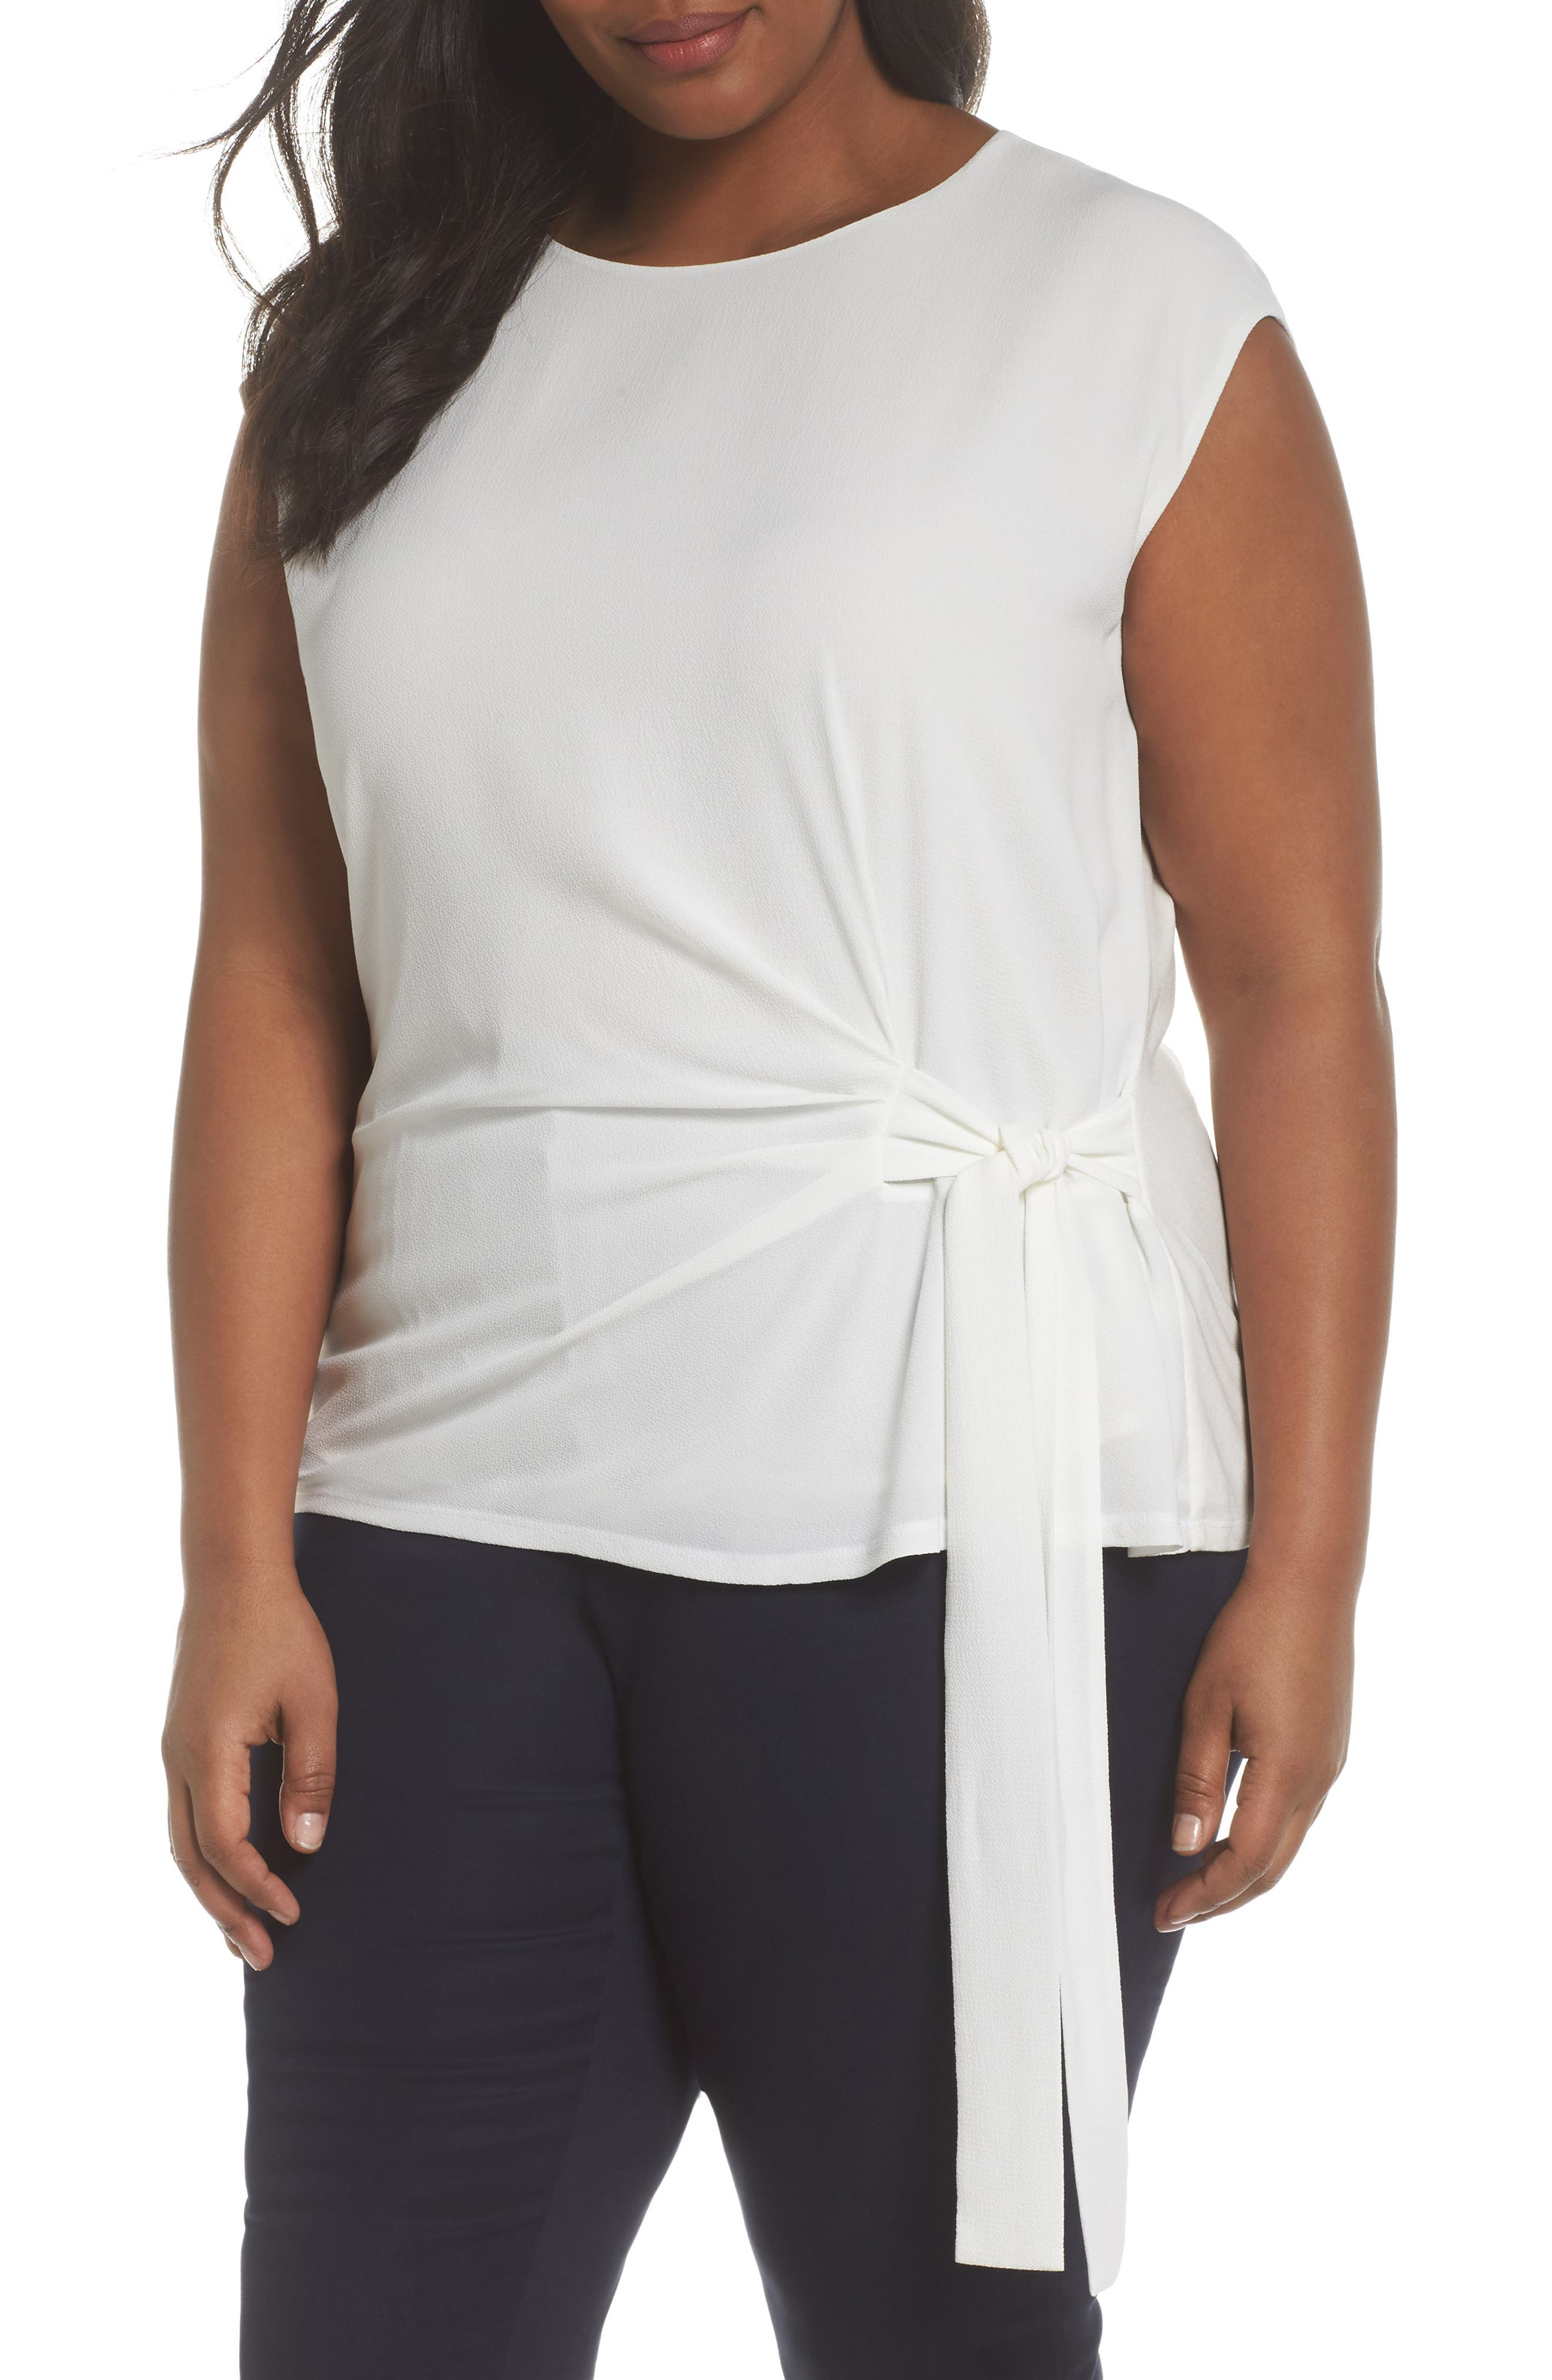 Alternate Image 1 Selected - Vince Camuto Side Tie Mixed Media Top (Plus Size)